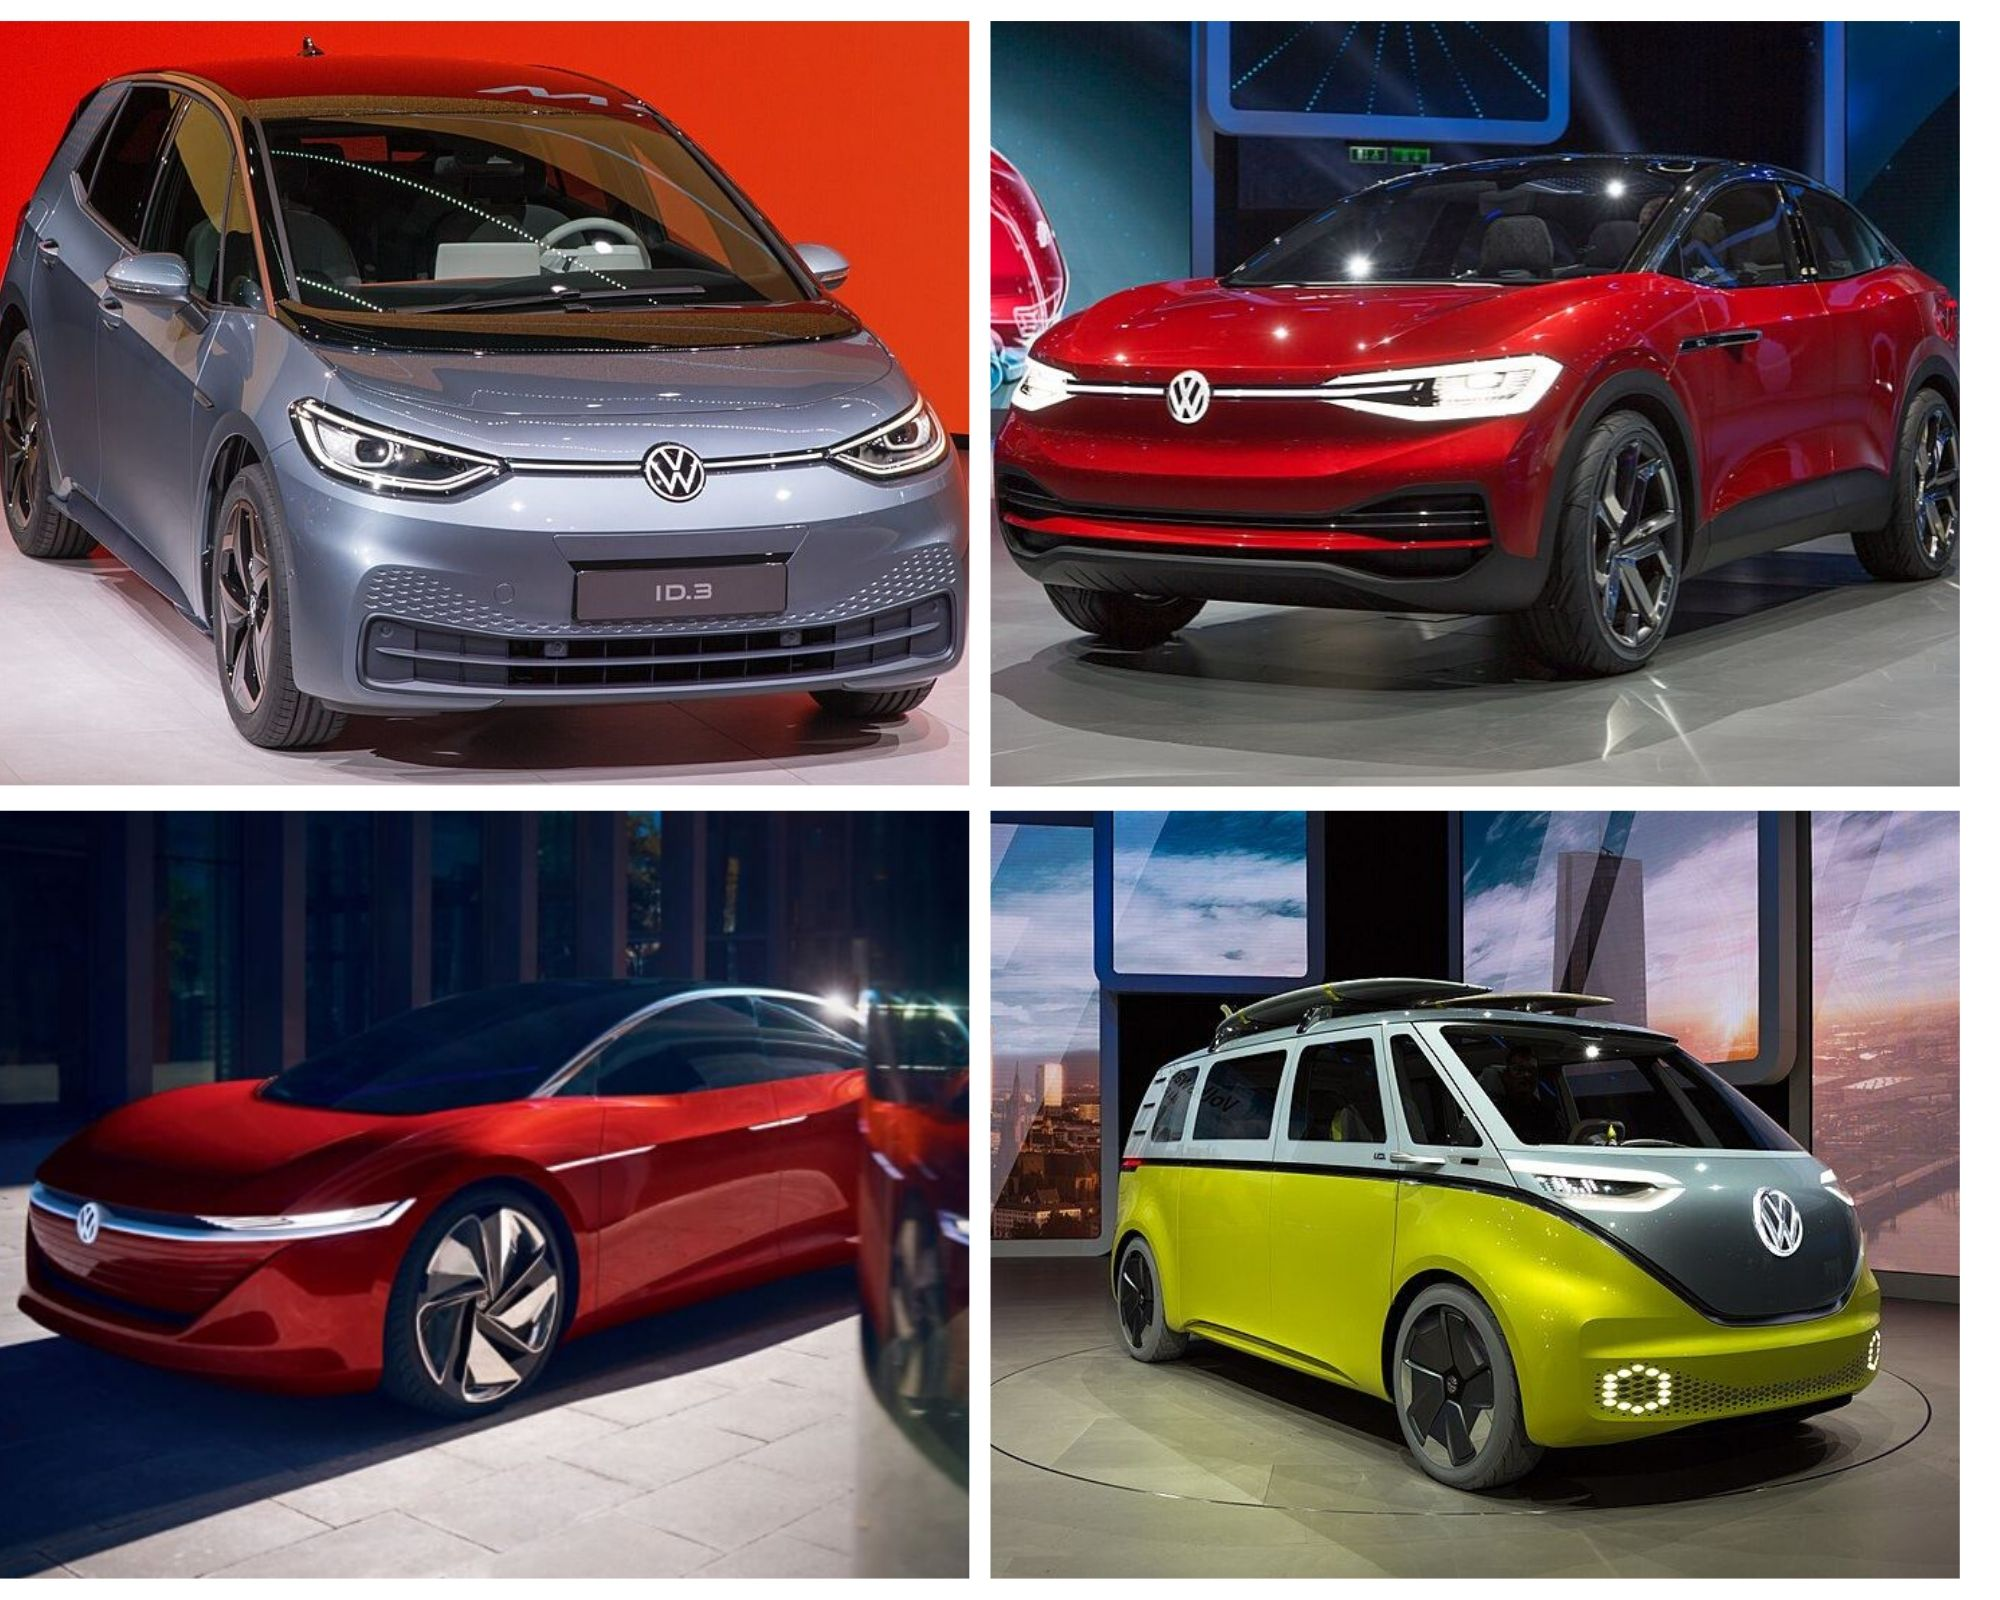 VW ID. Concept family